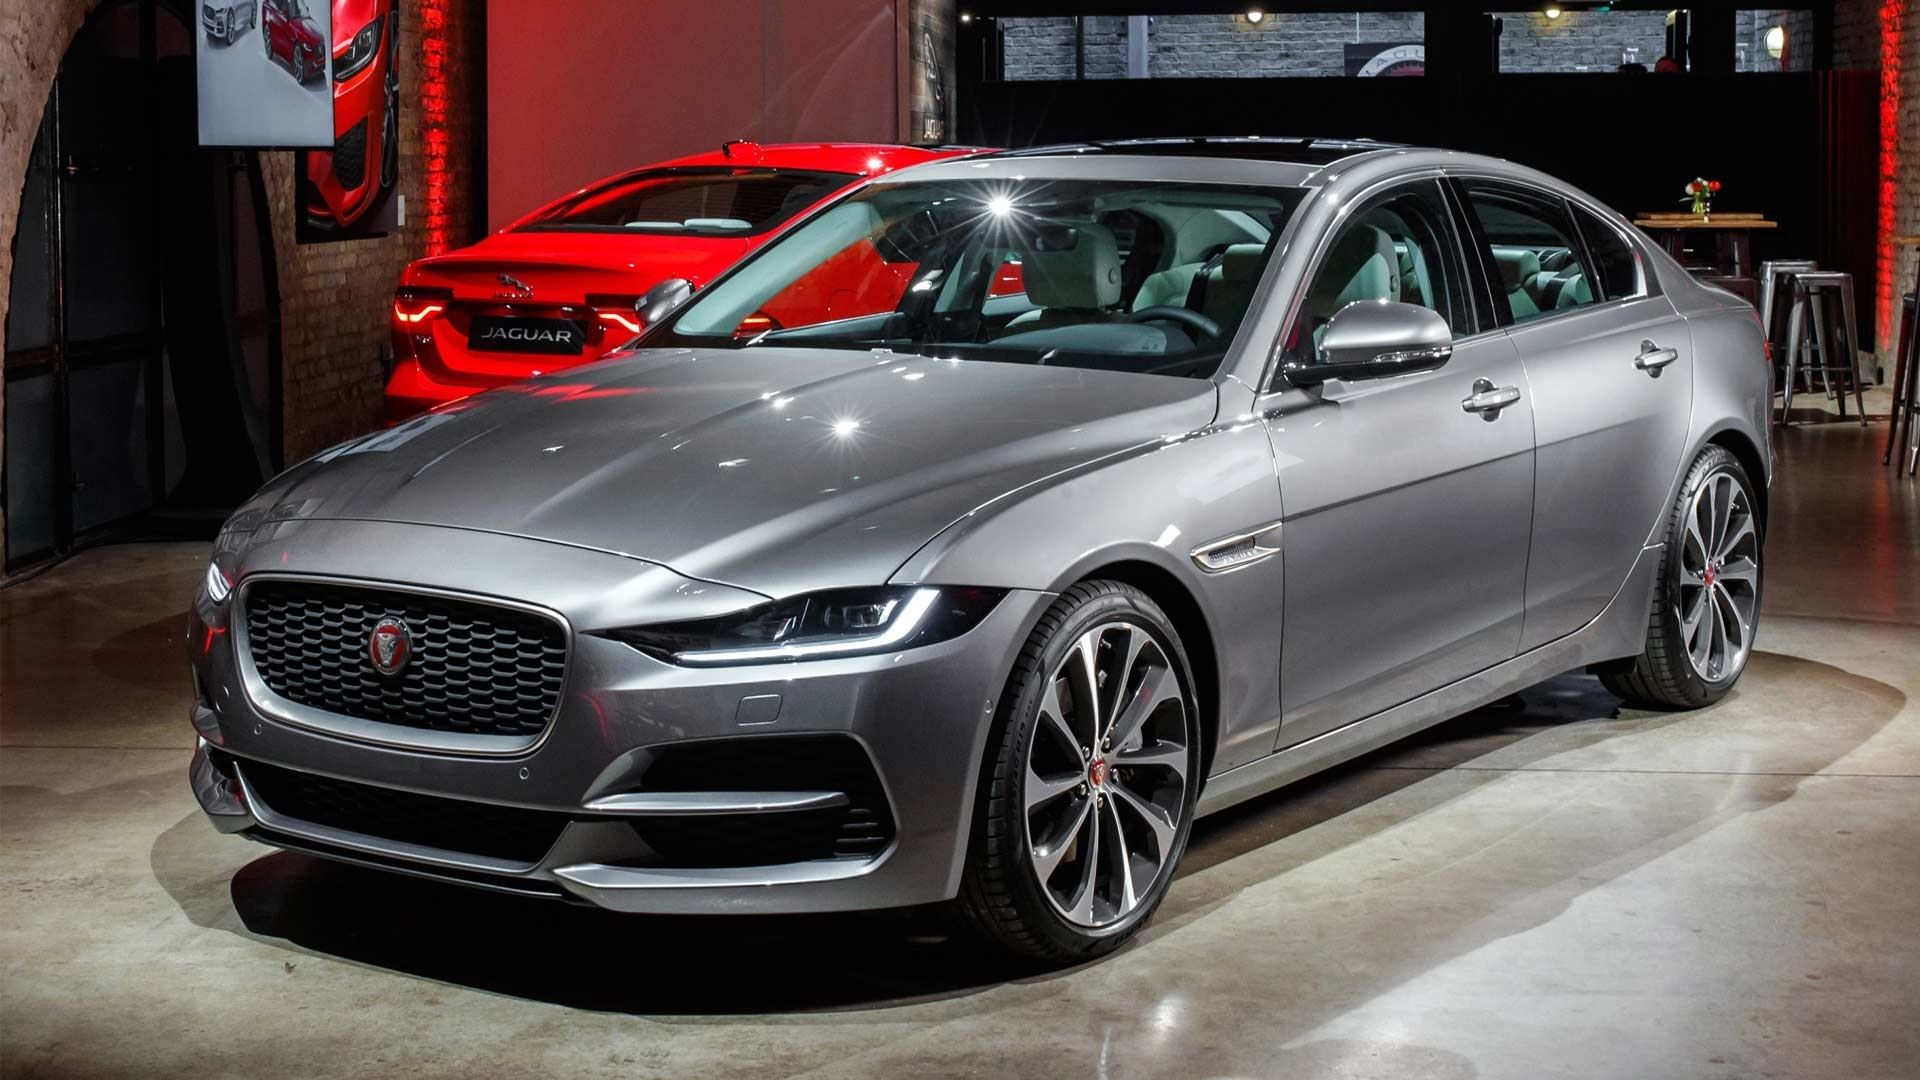 what will the Jaguar Xe 2020 be released Jaguar car